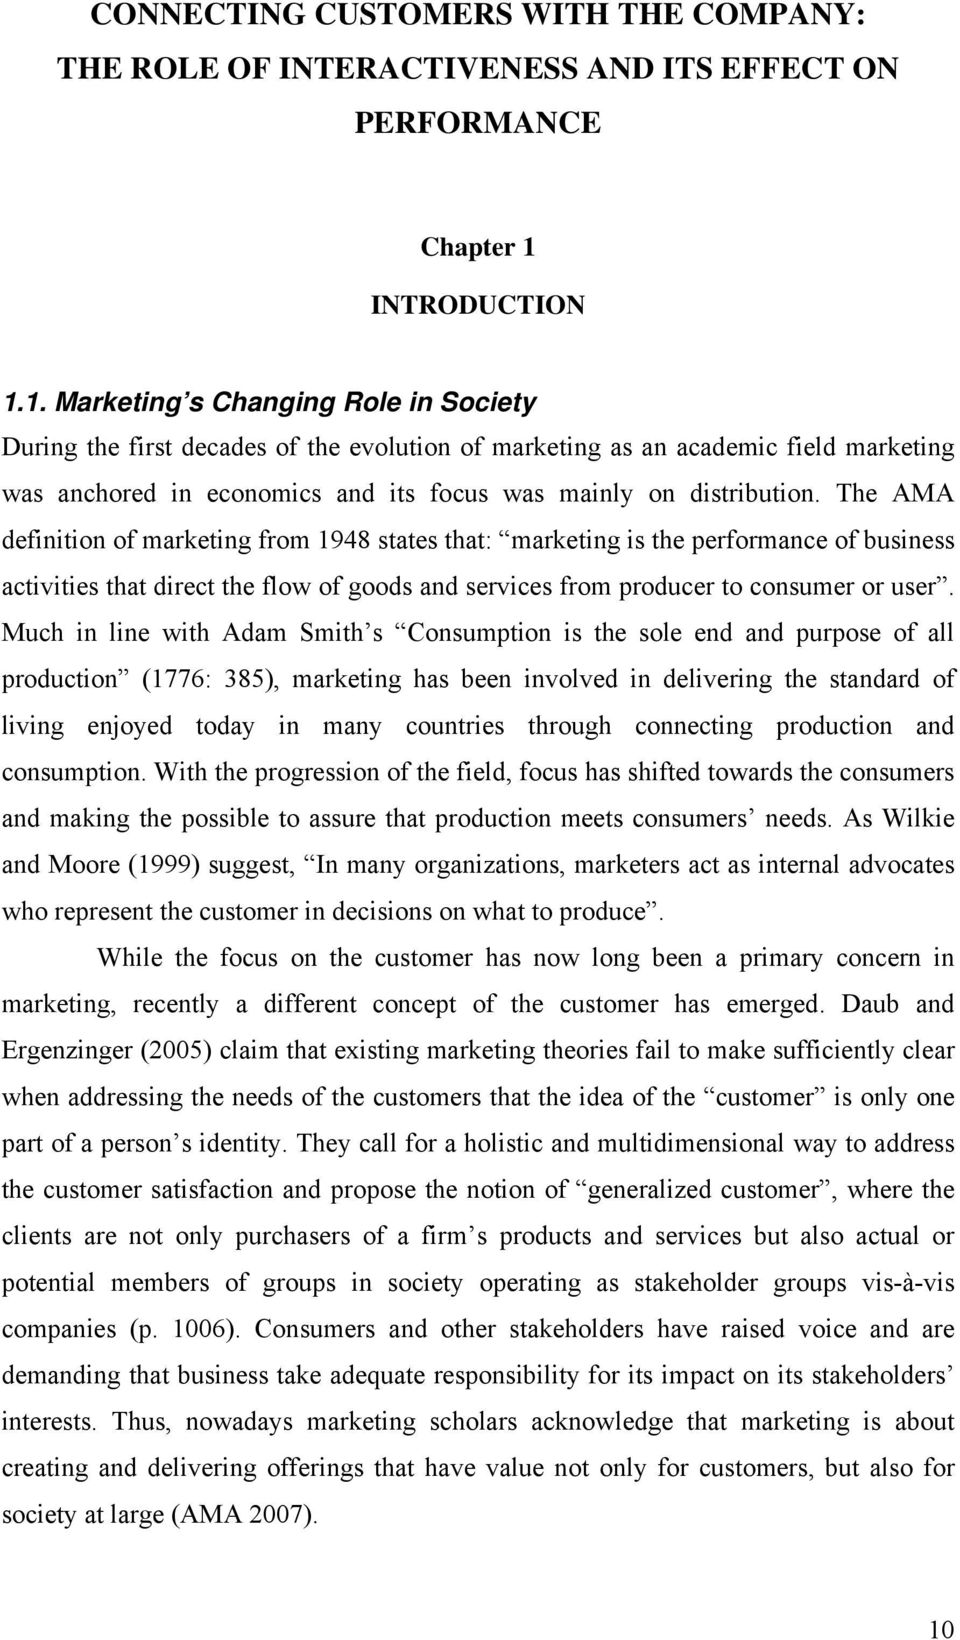 1. Marketing s Changing Role in Society During the first decades of the evolution of marketing as an academic field marketing was anchored in economics and its focus was mainly on distribution.